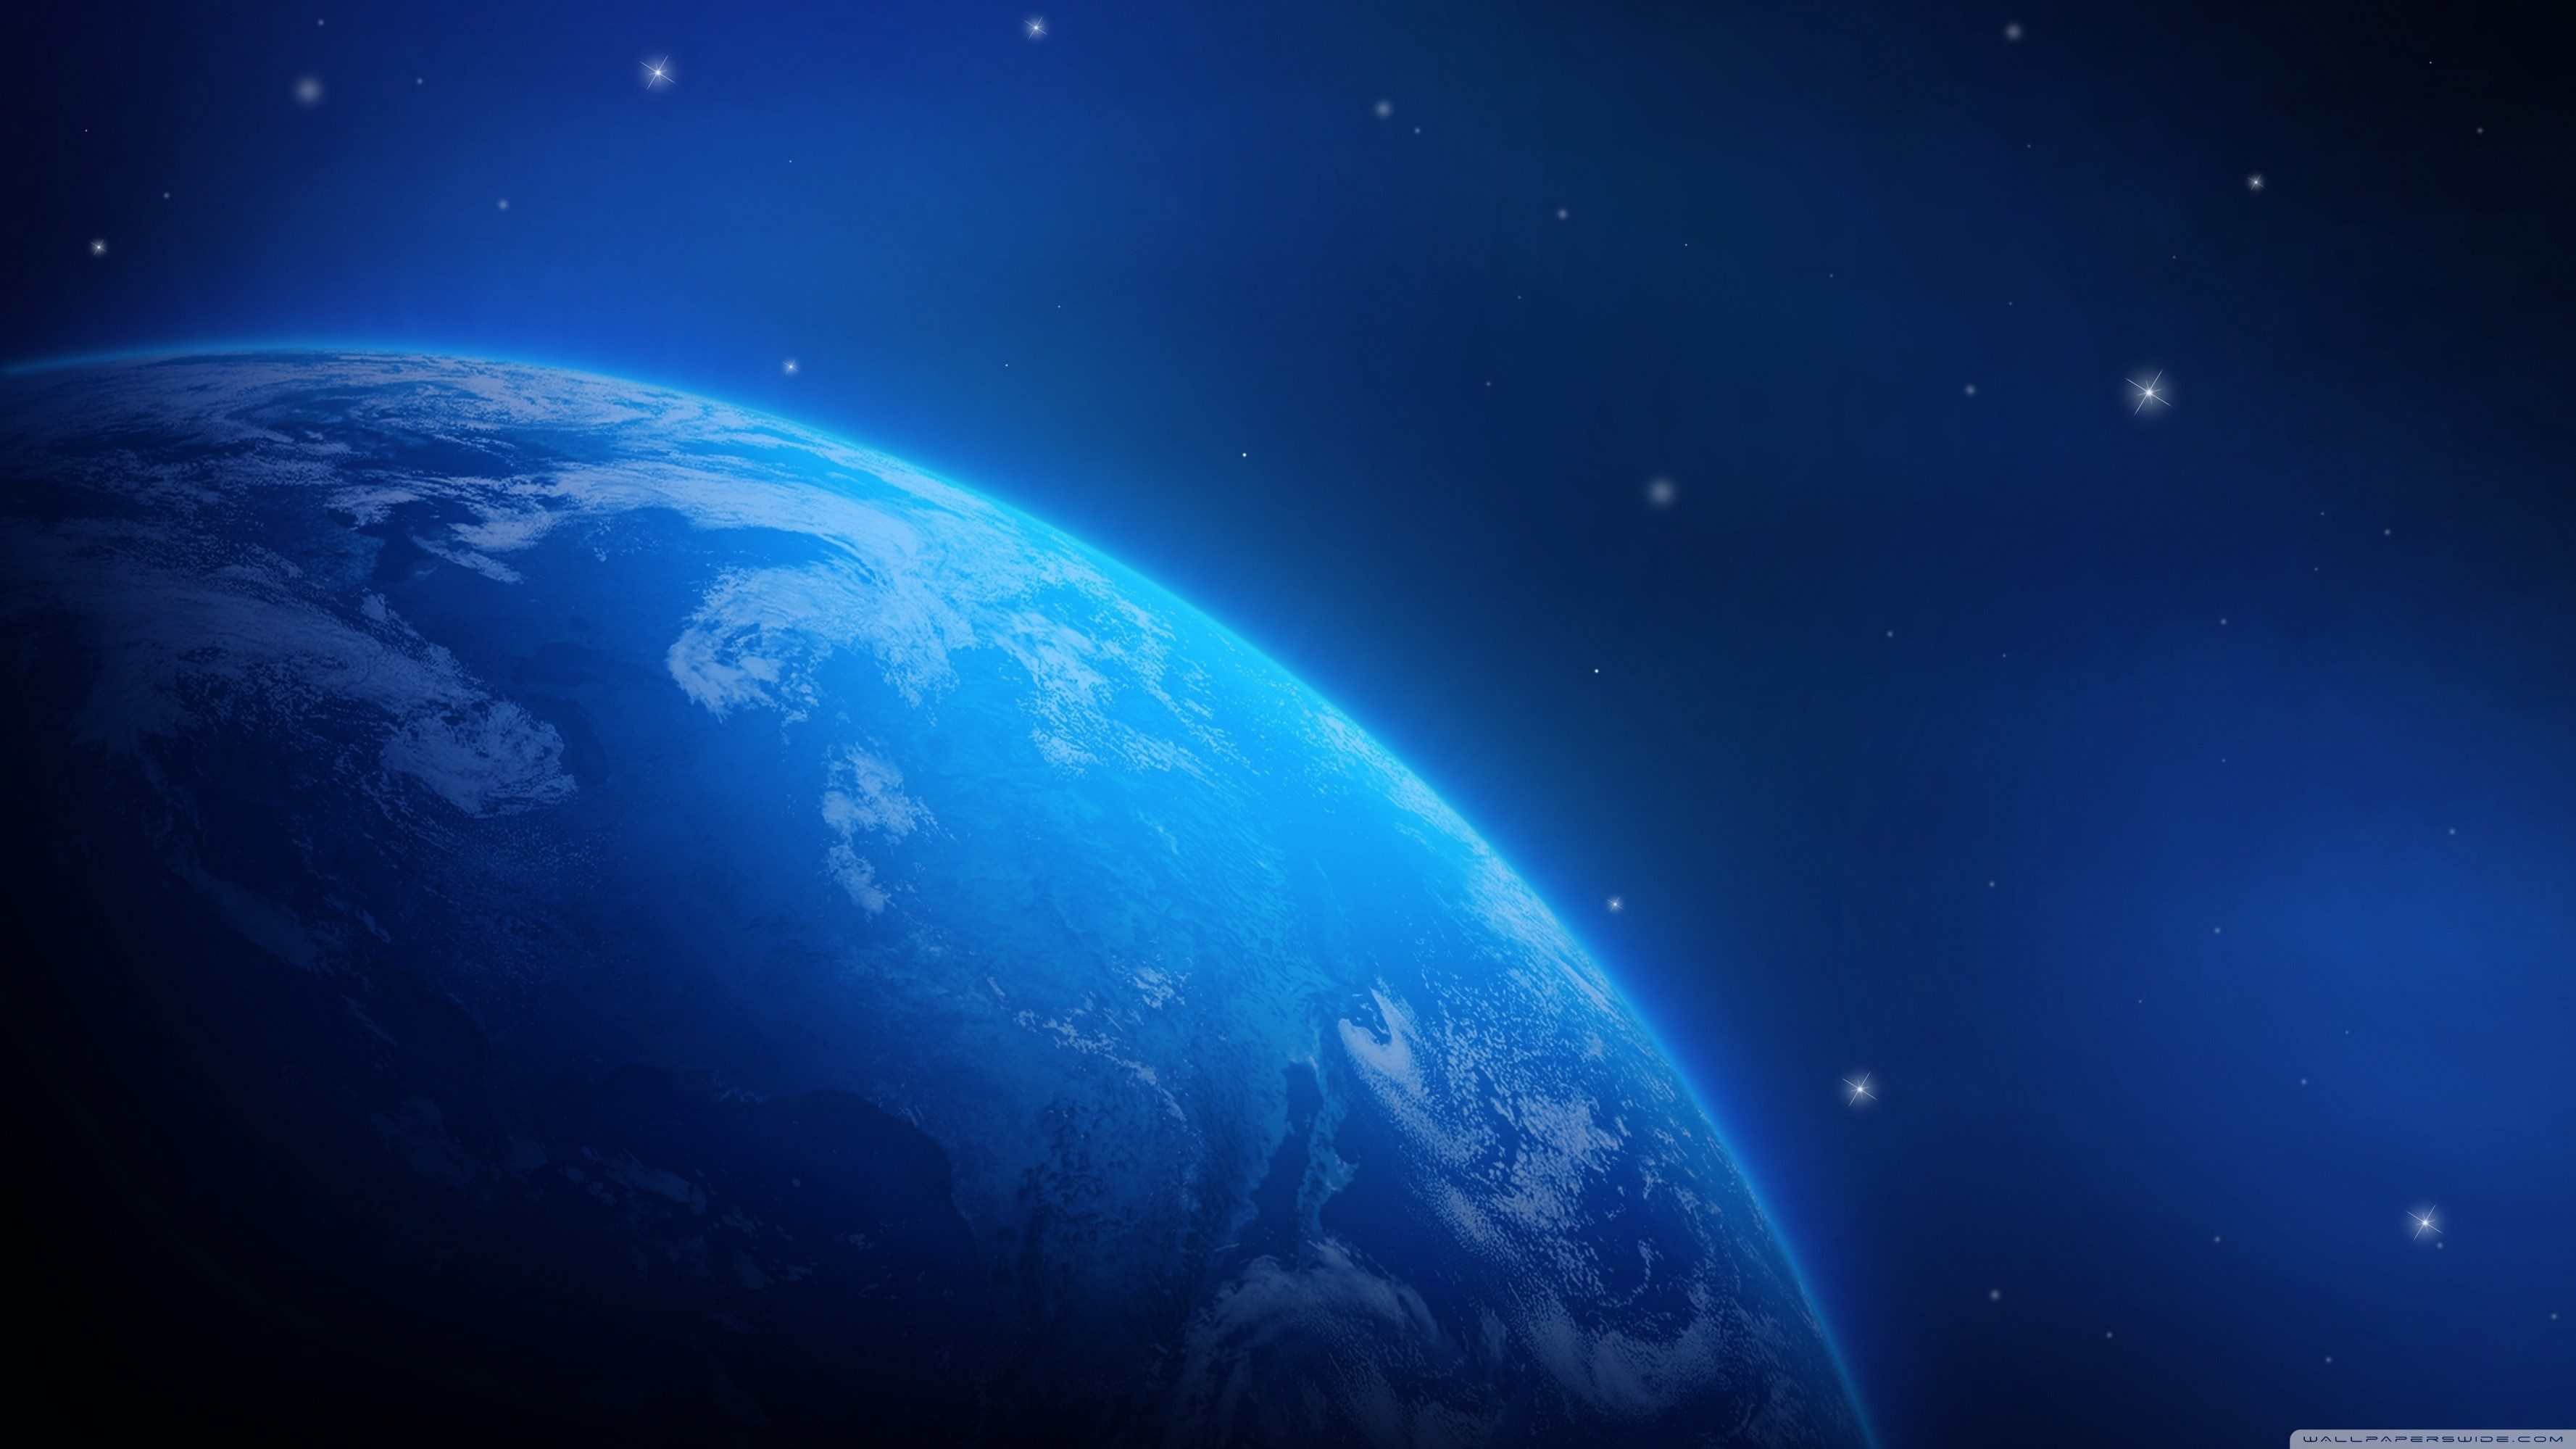 3554x1999 Blue Planet Wallpaper